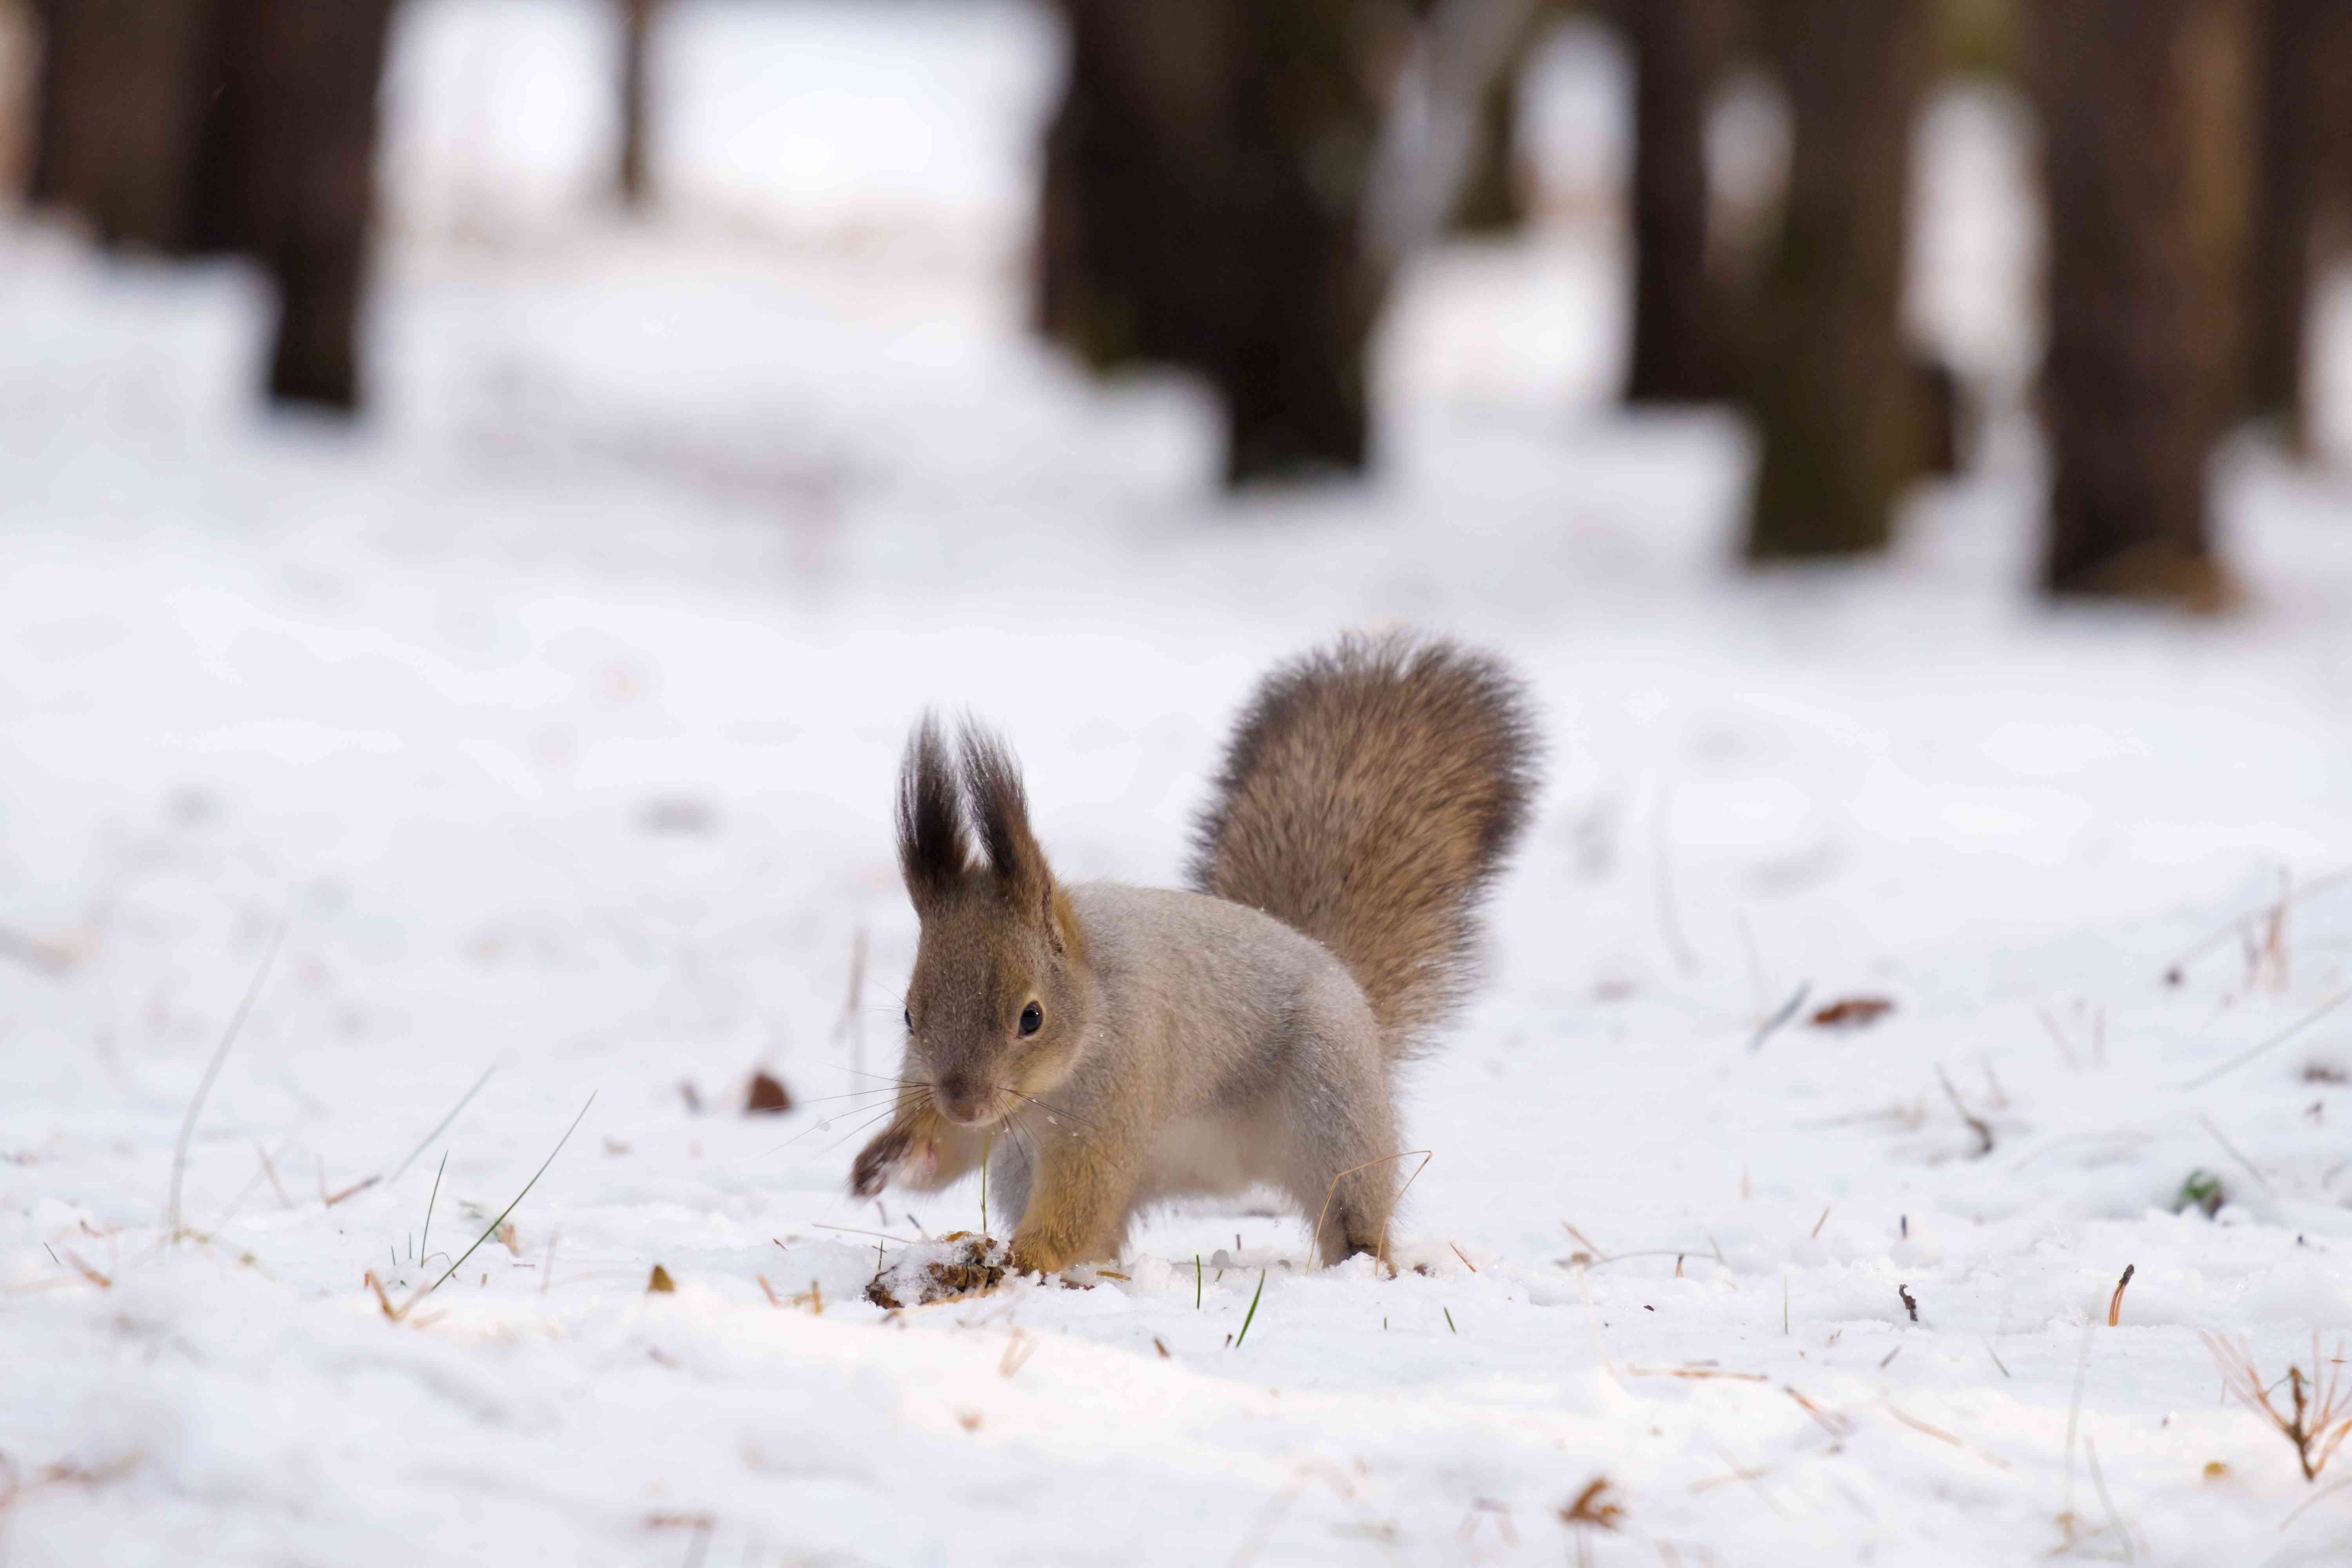 Eurasian red squirrel digging in snow